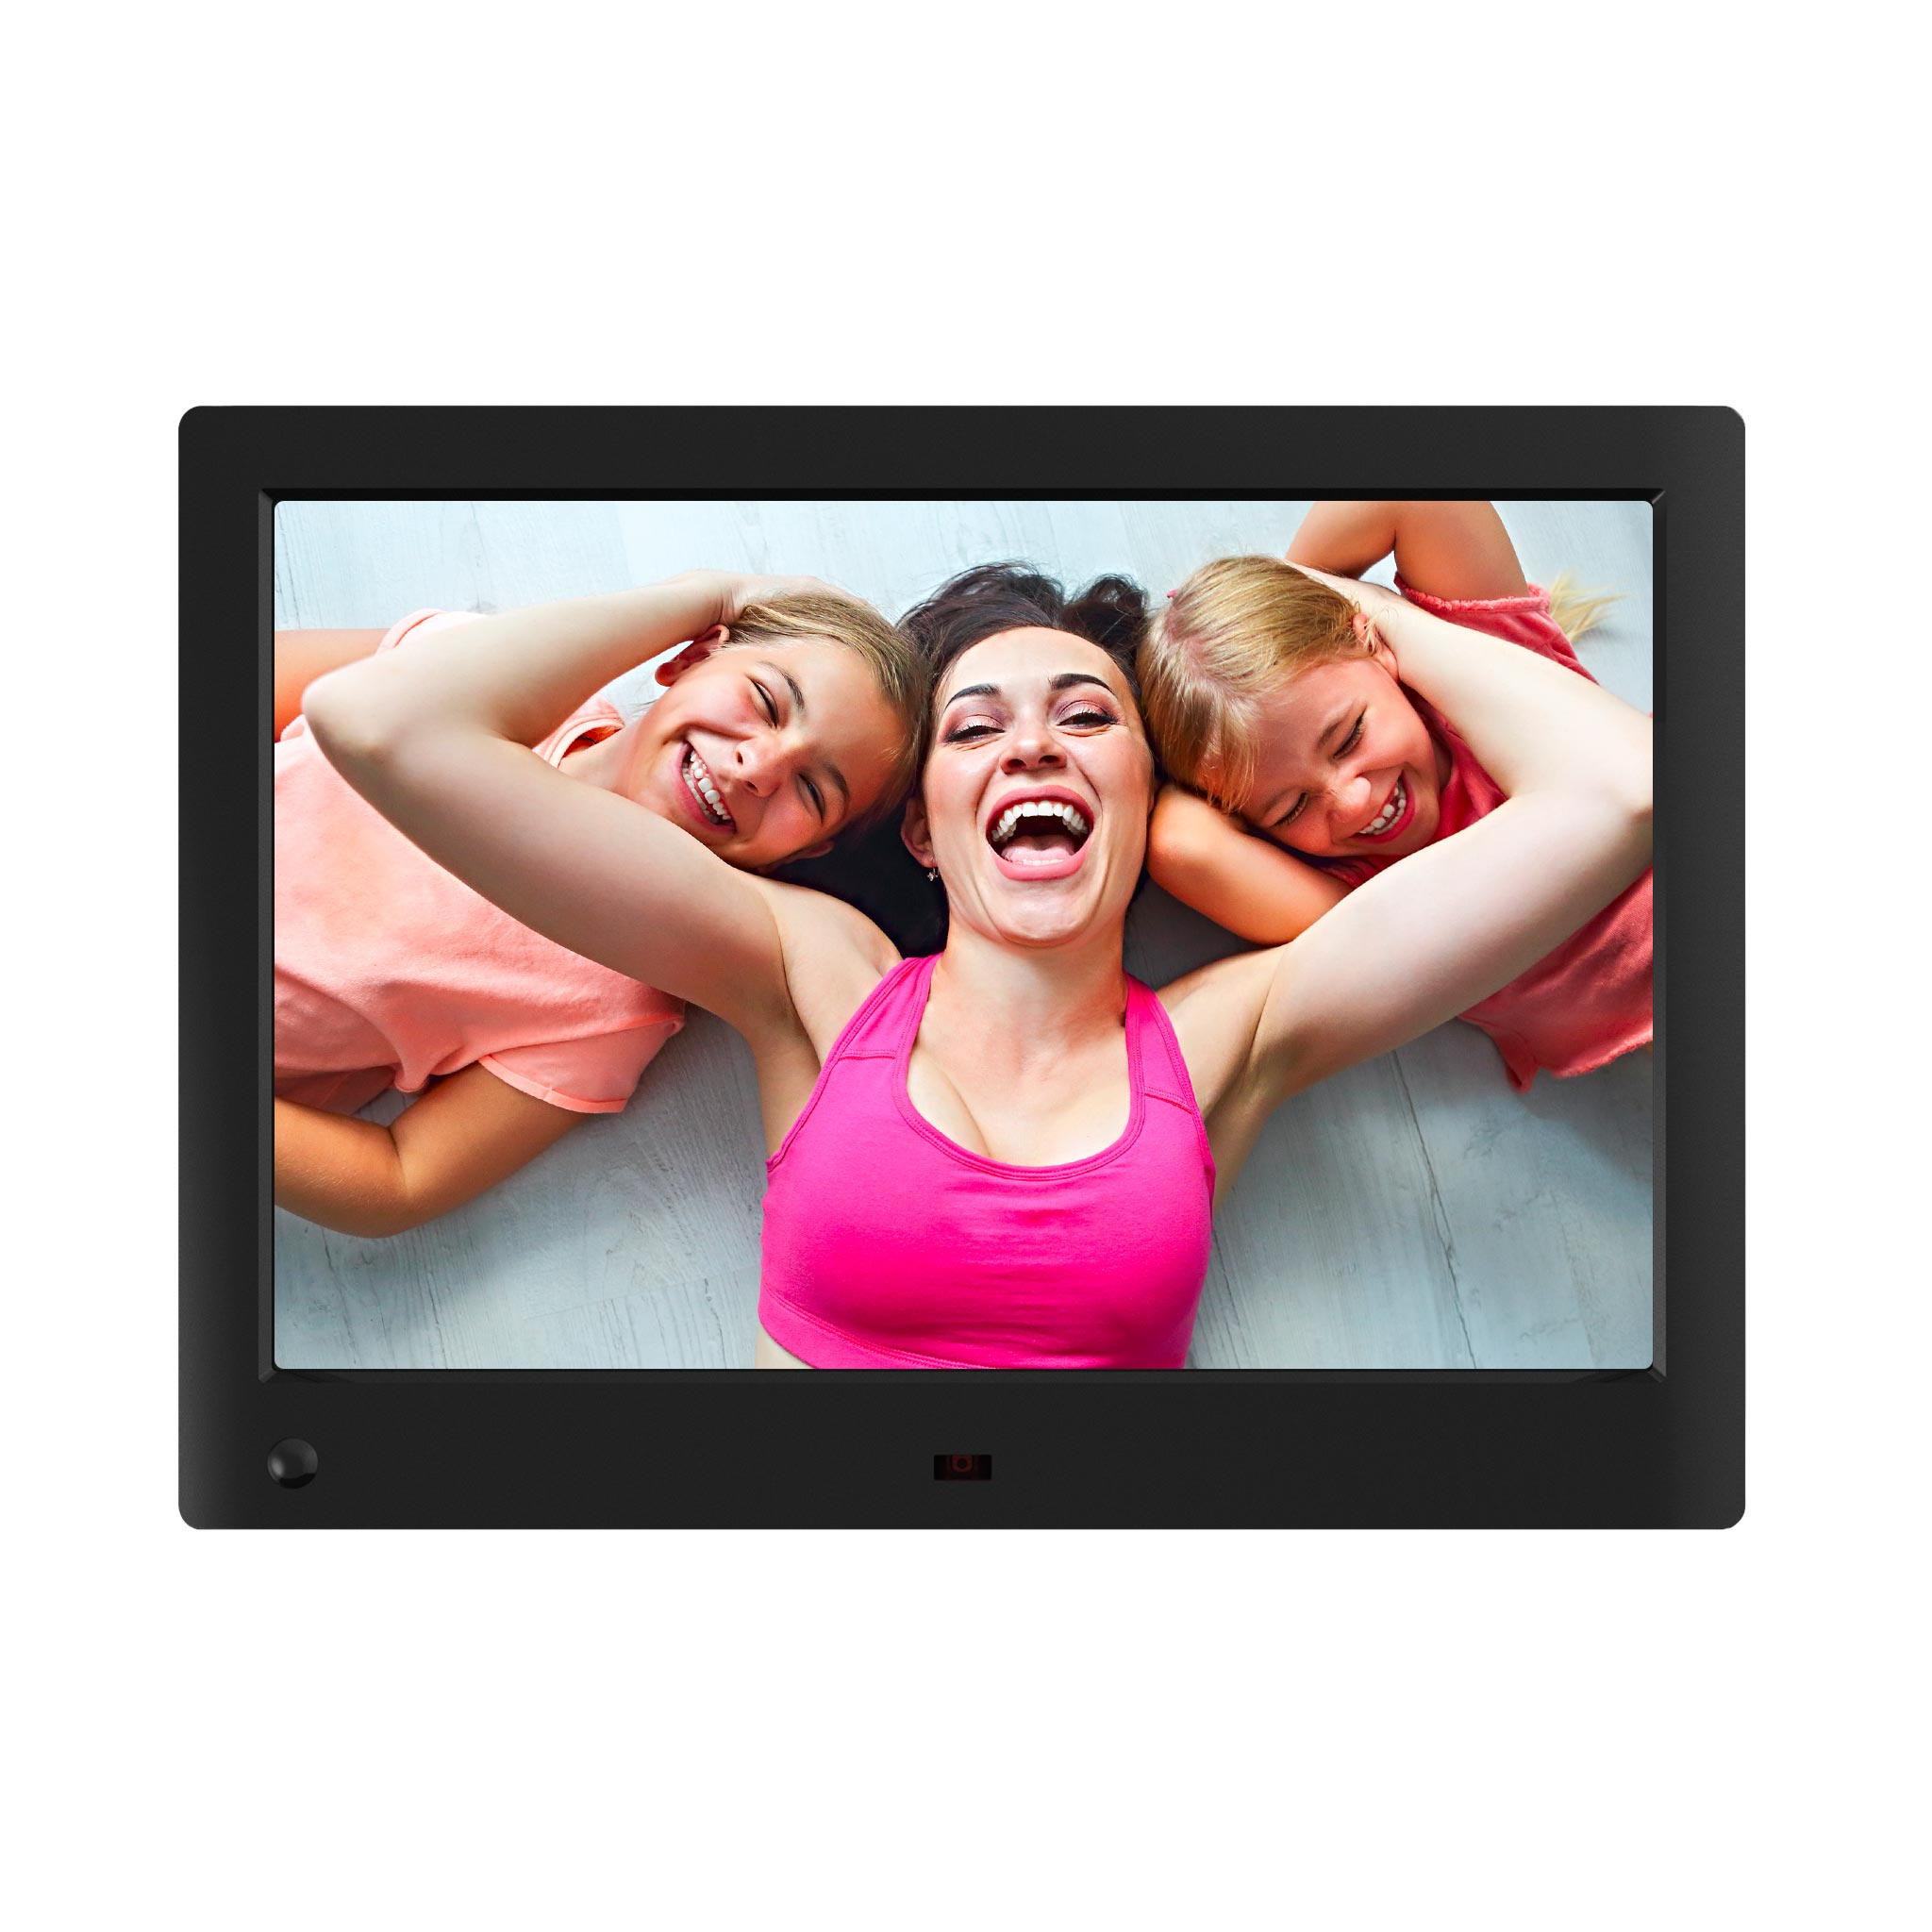 13.3 Inch Digital Photo Frame Advertising Media Player 1280800 16:10 HD Screen Advertising Machine MP3//Photo//Video Player with Remote Control,White